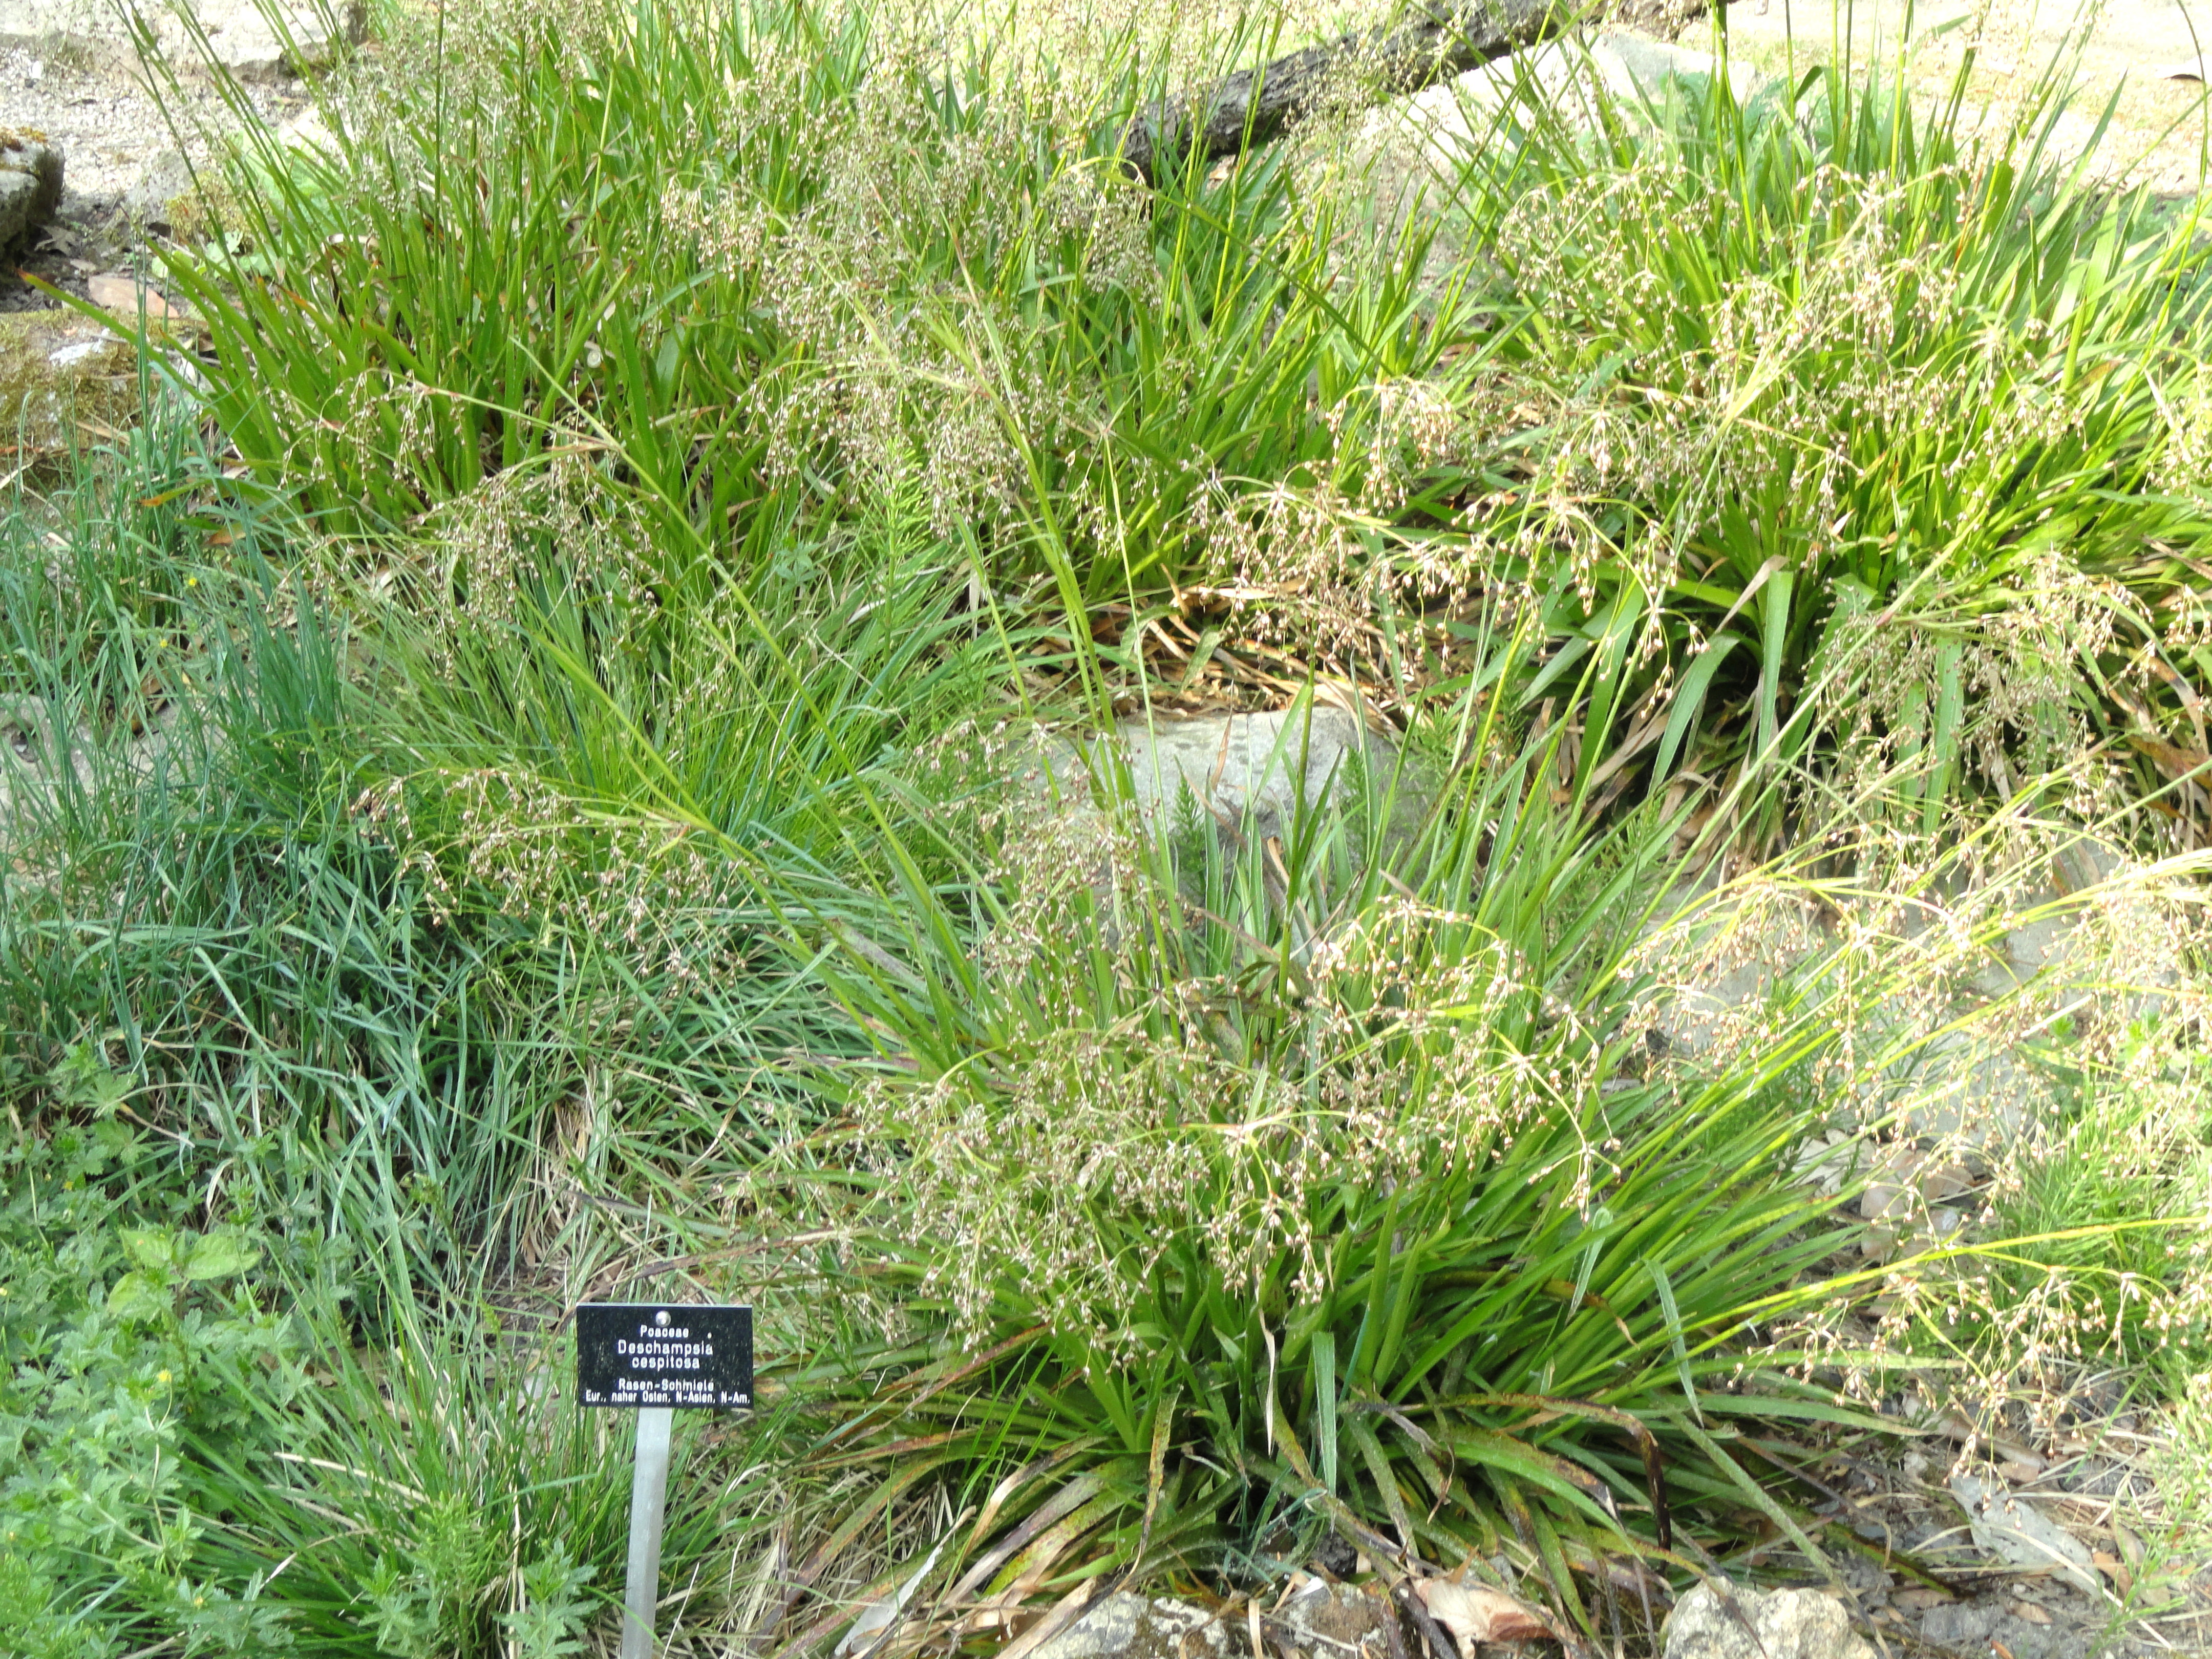 Image of Tufted Hair-grass